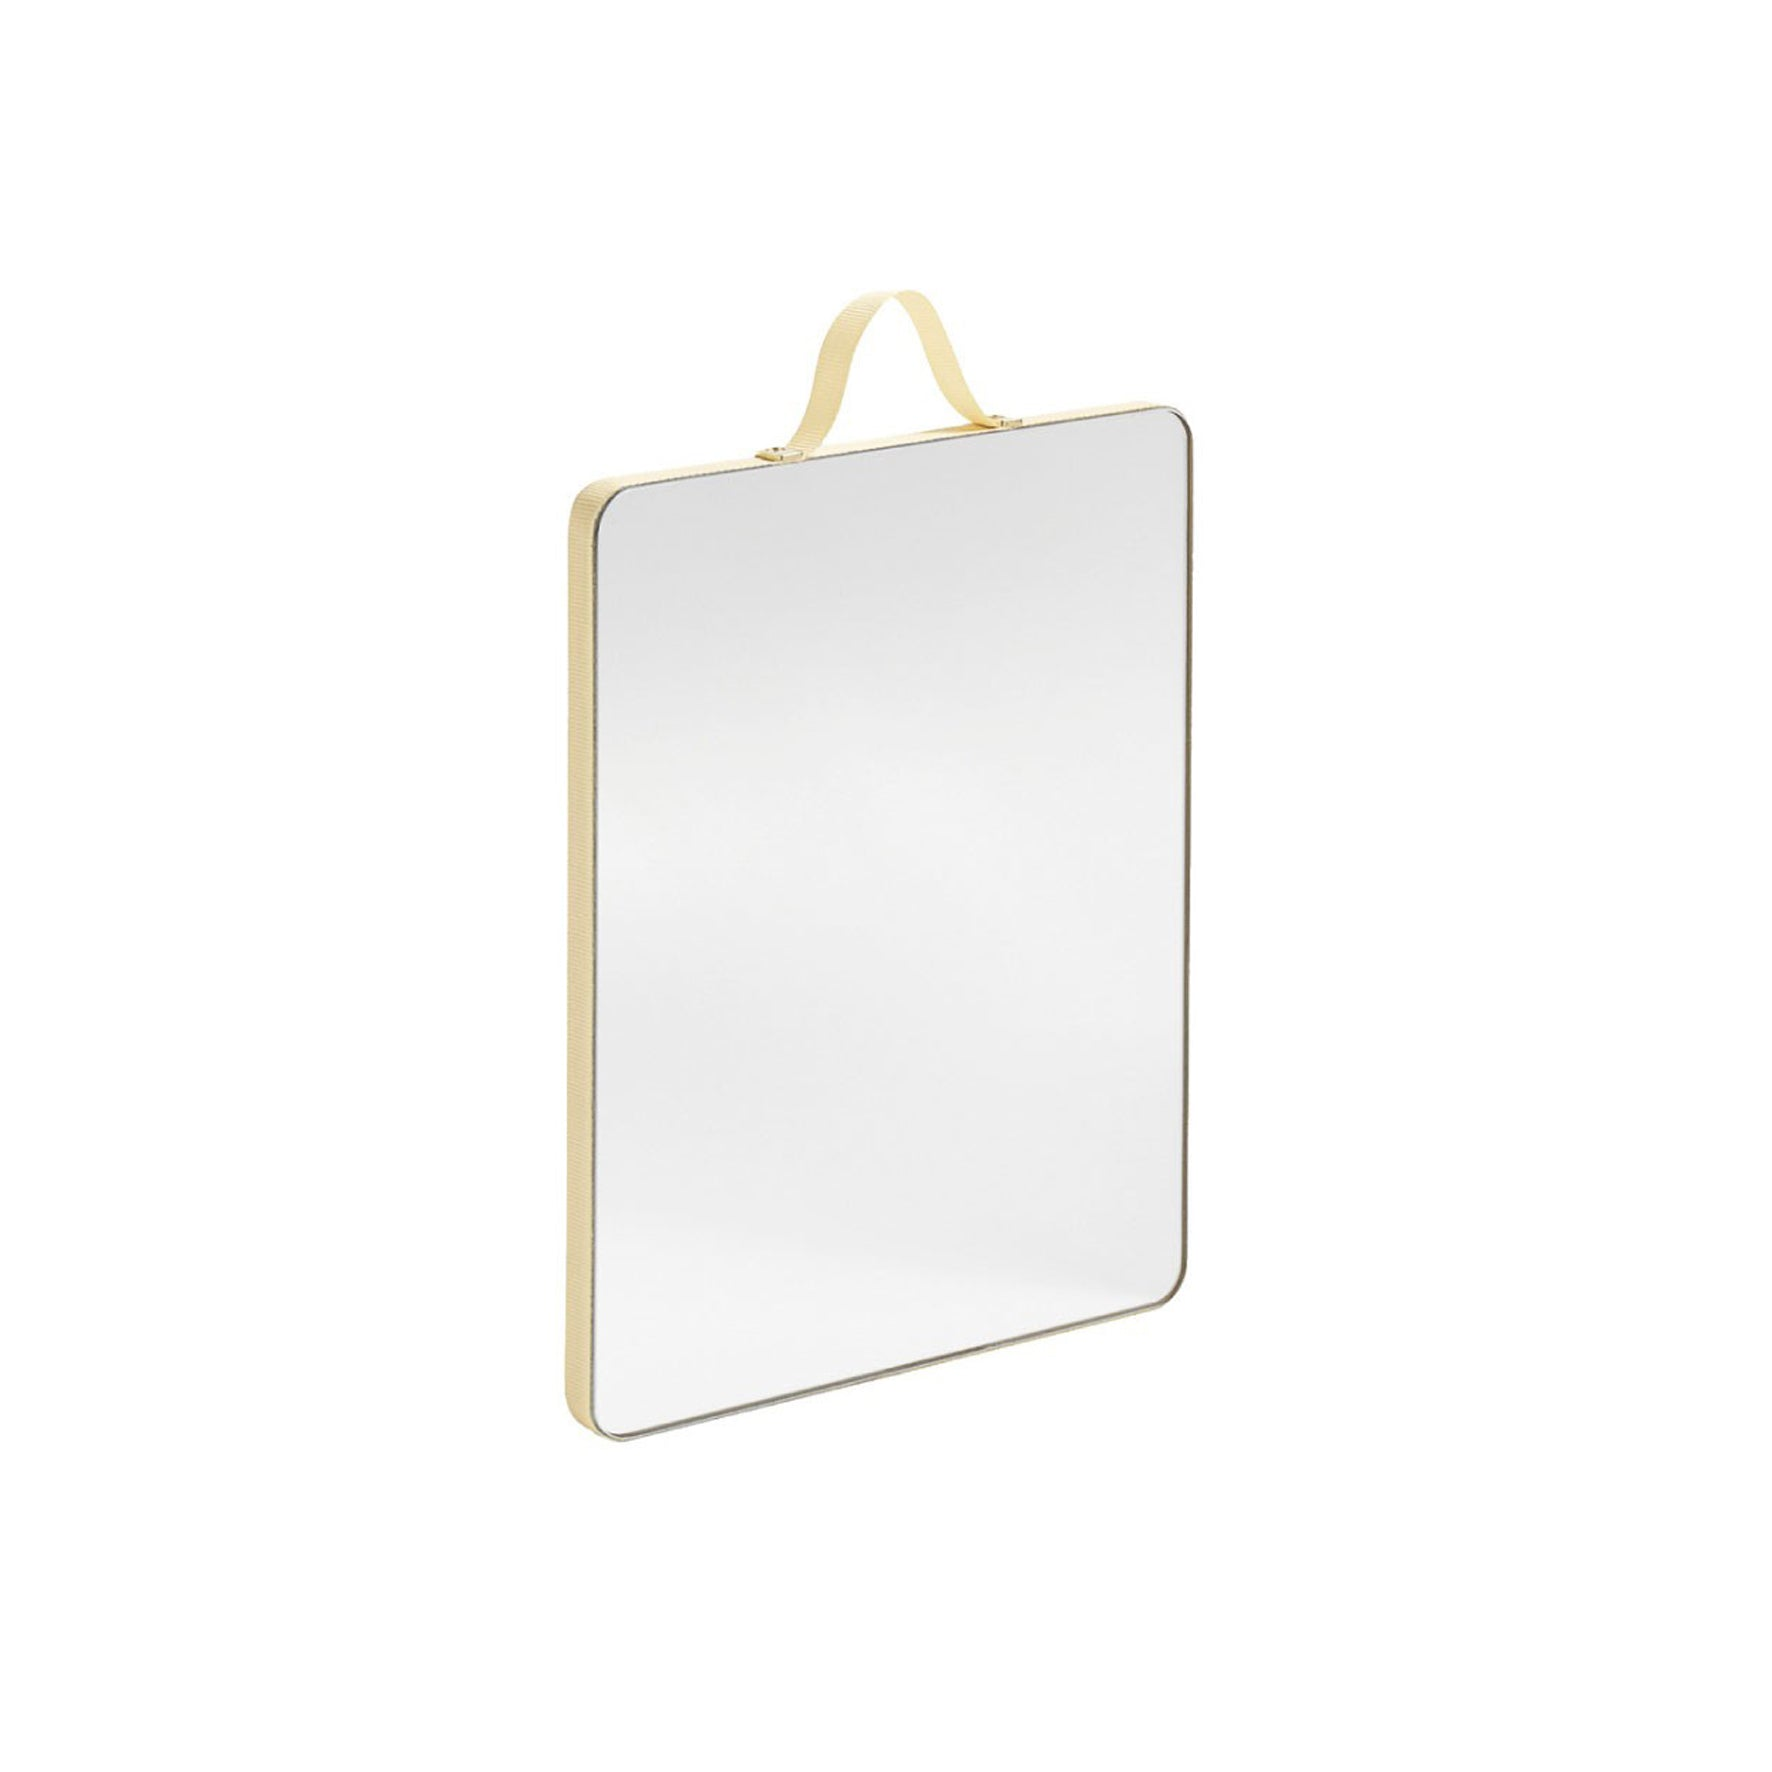 HAY and Inga Sempé's Ruban Mirrors are a range of ribbon-edged mirrors. The oak frame is wrapped with colourful ribbon that softens the edges and also functions as a loop for hanging. Available in a number of different sizes and colours that can be hung individually or arranged in a cluster.